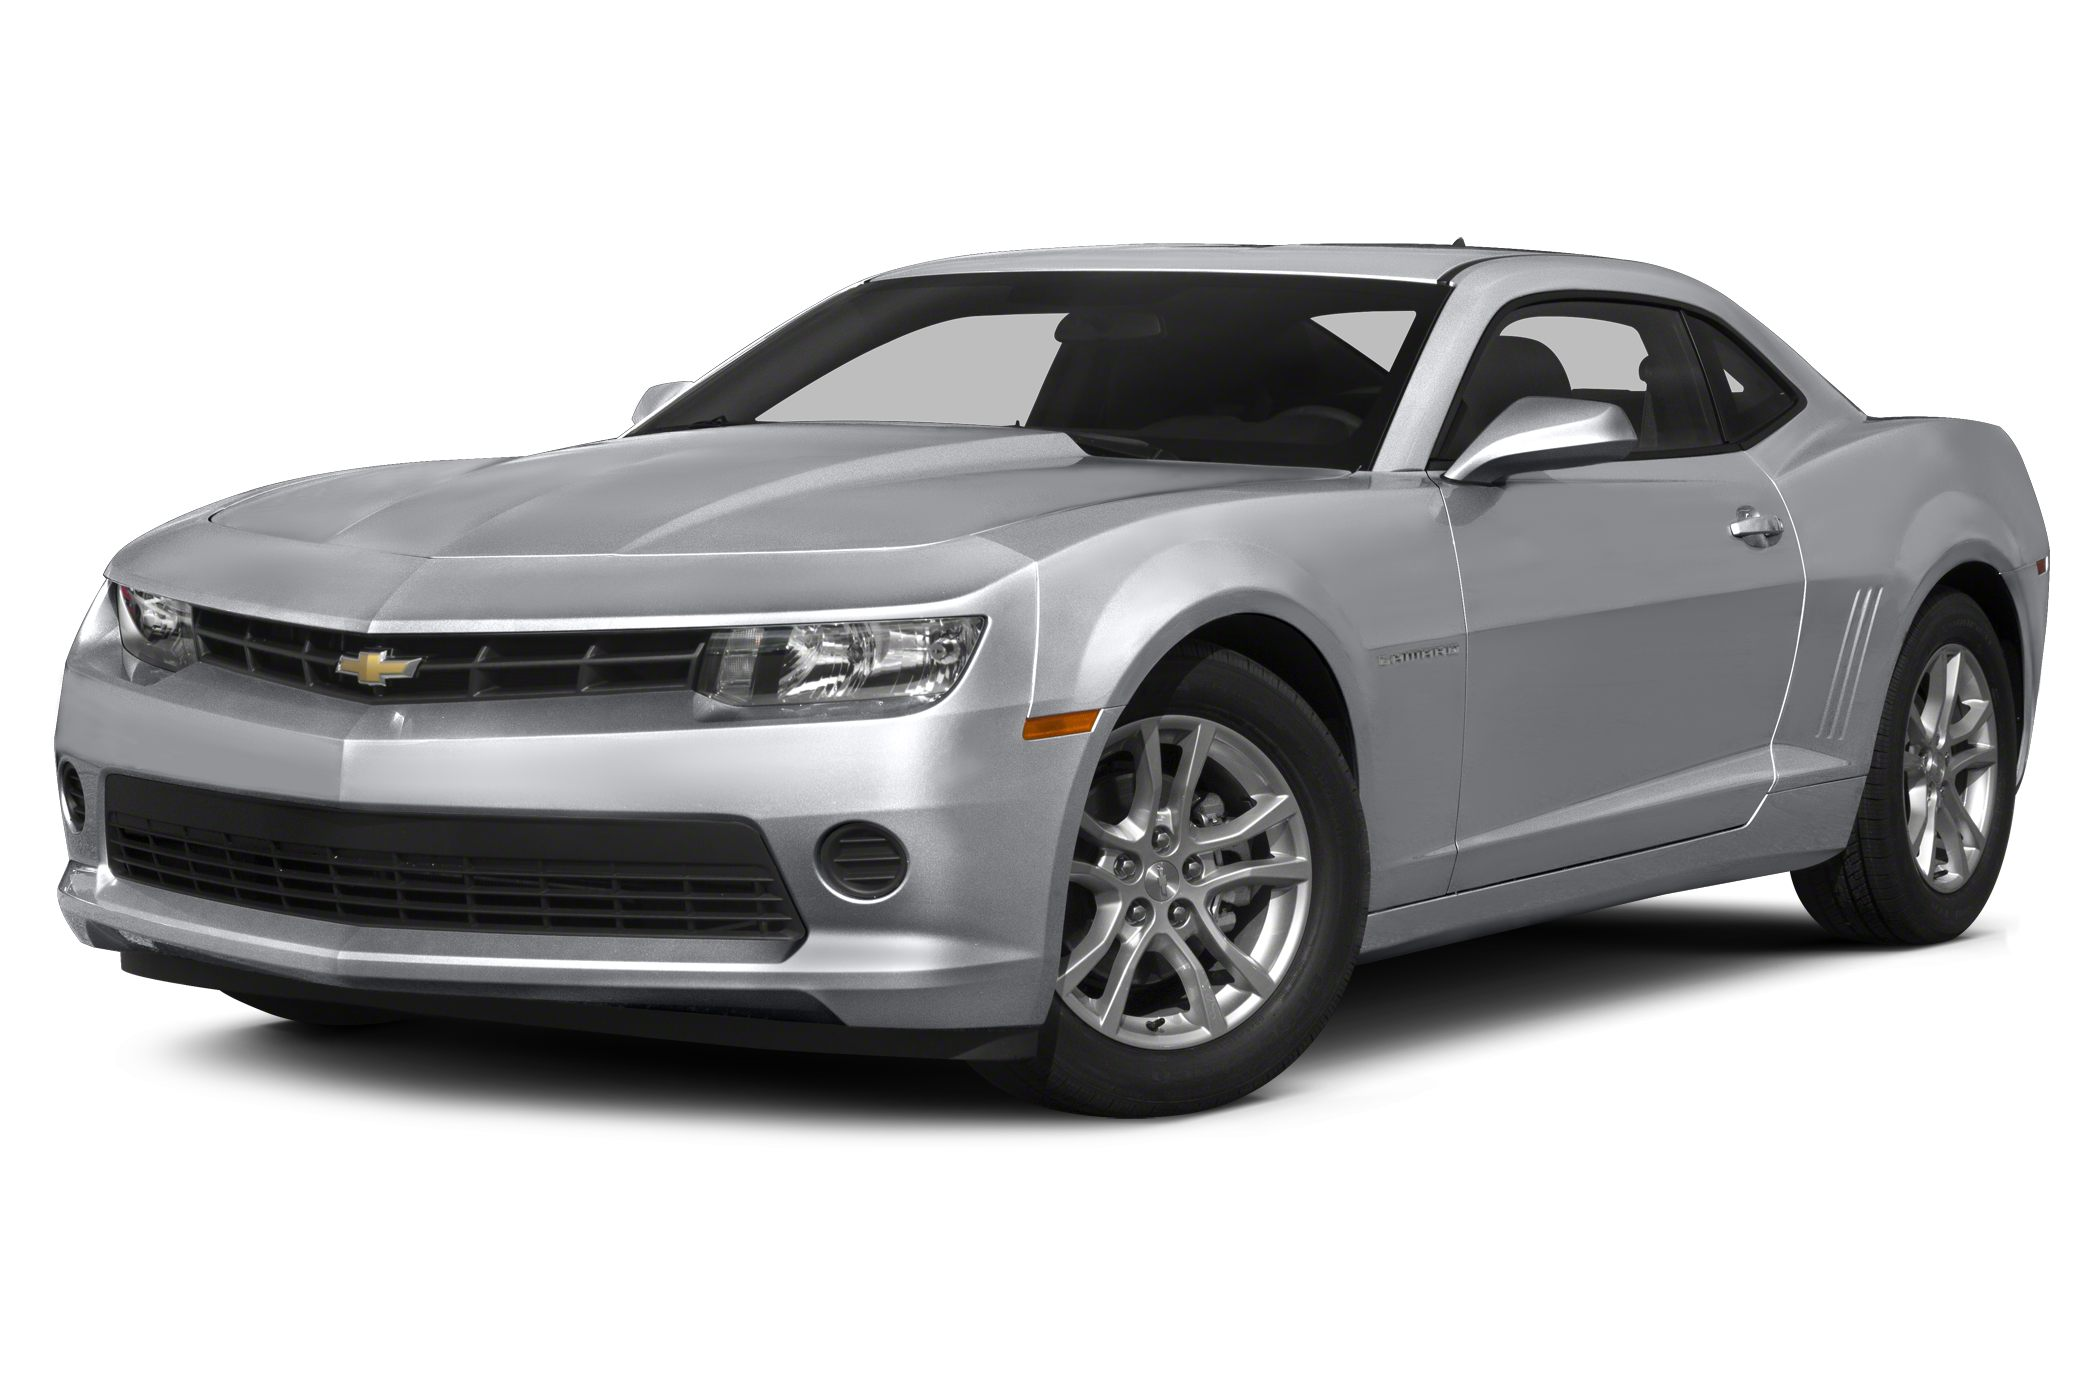 2015 Chevrolet Camaro 1LT Coupe for sale in Brandon for $30,140 with 0 miles